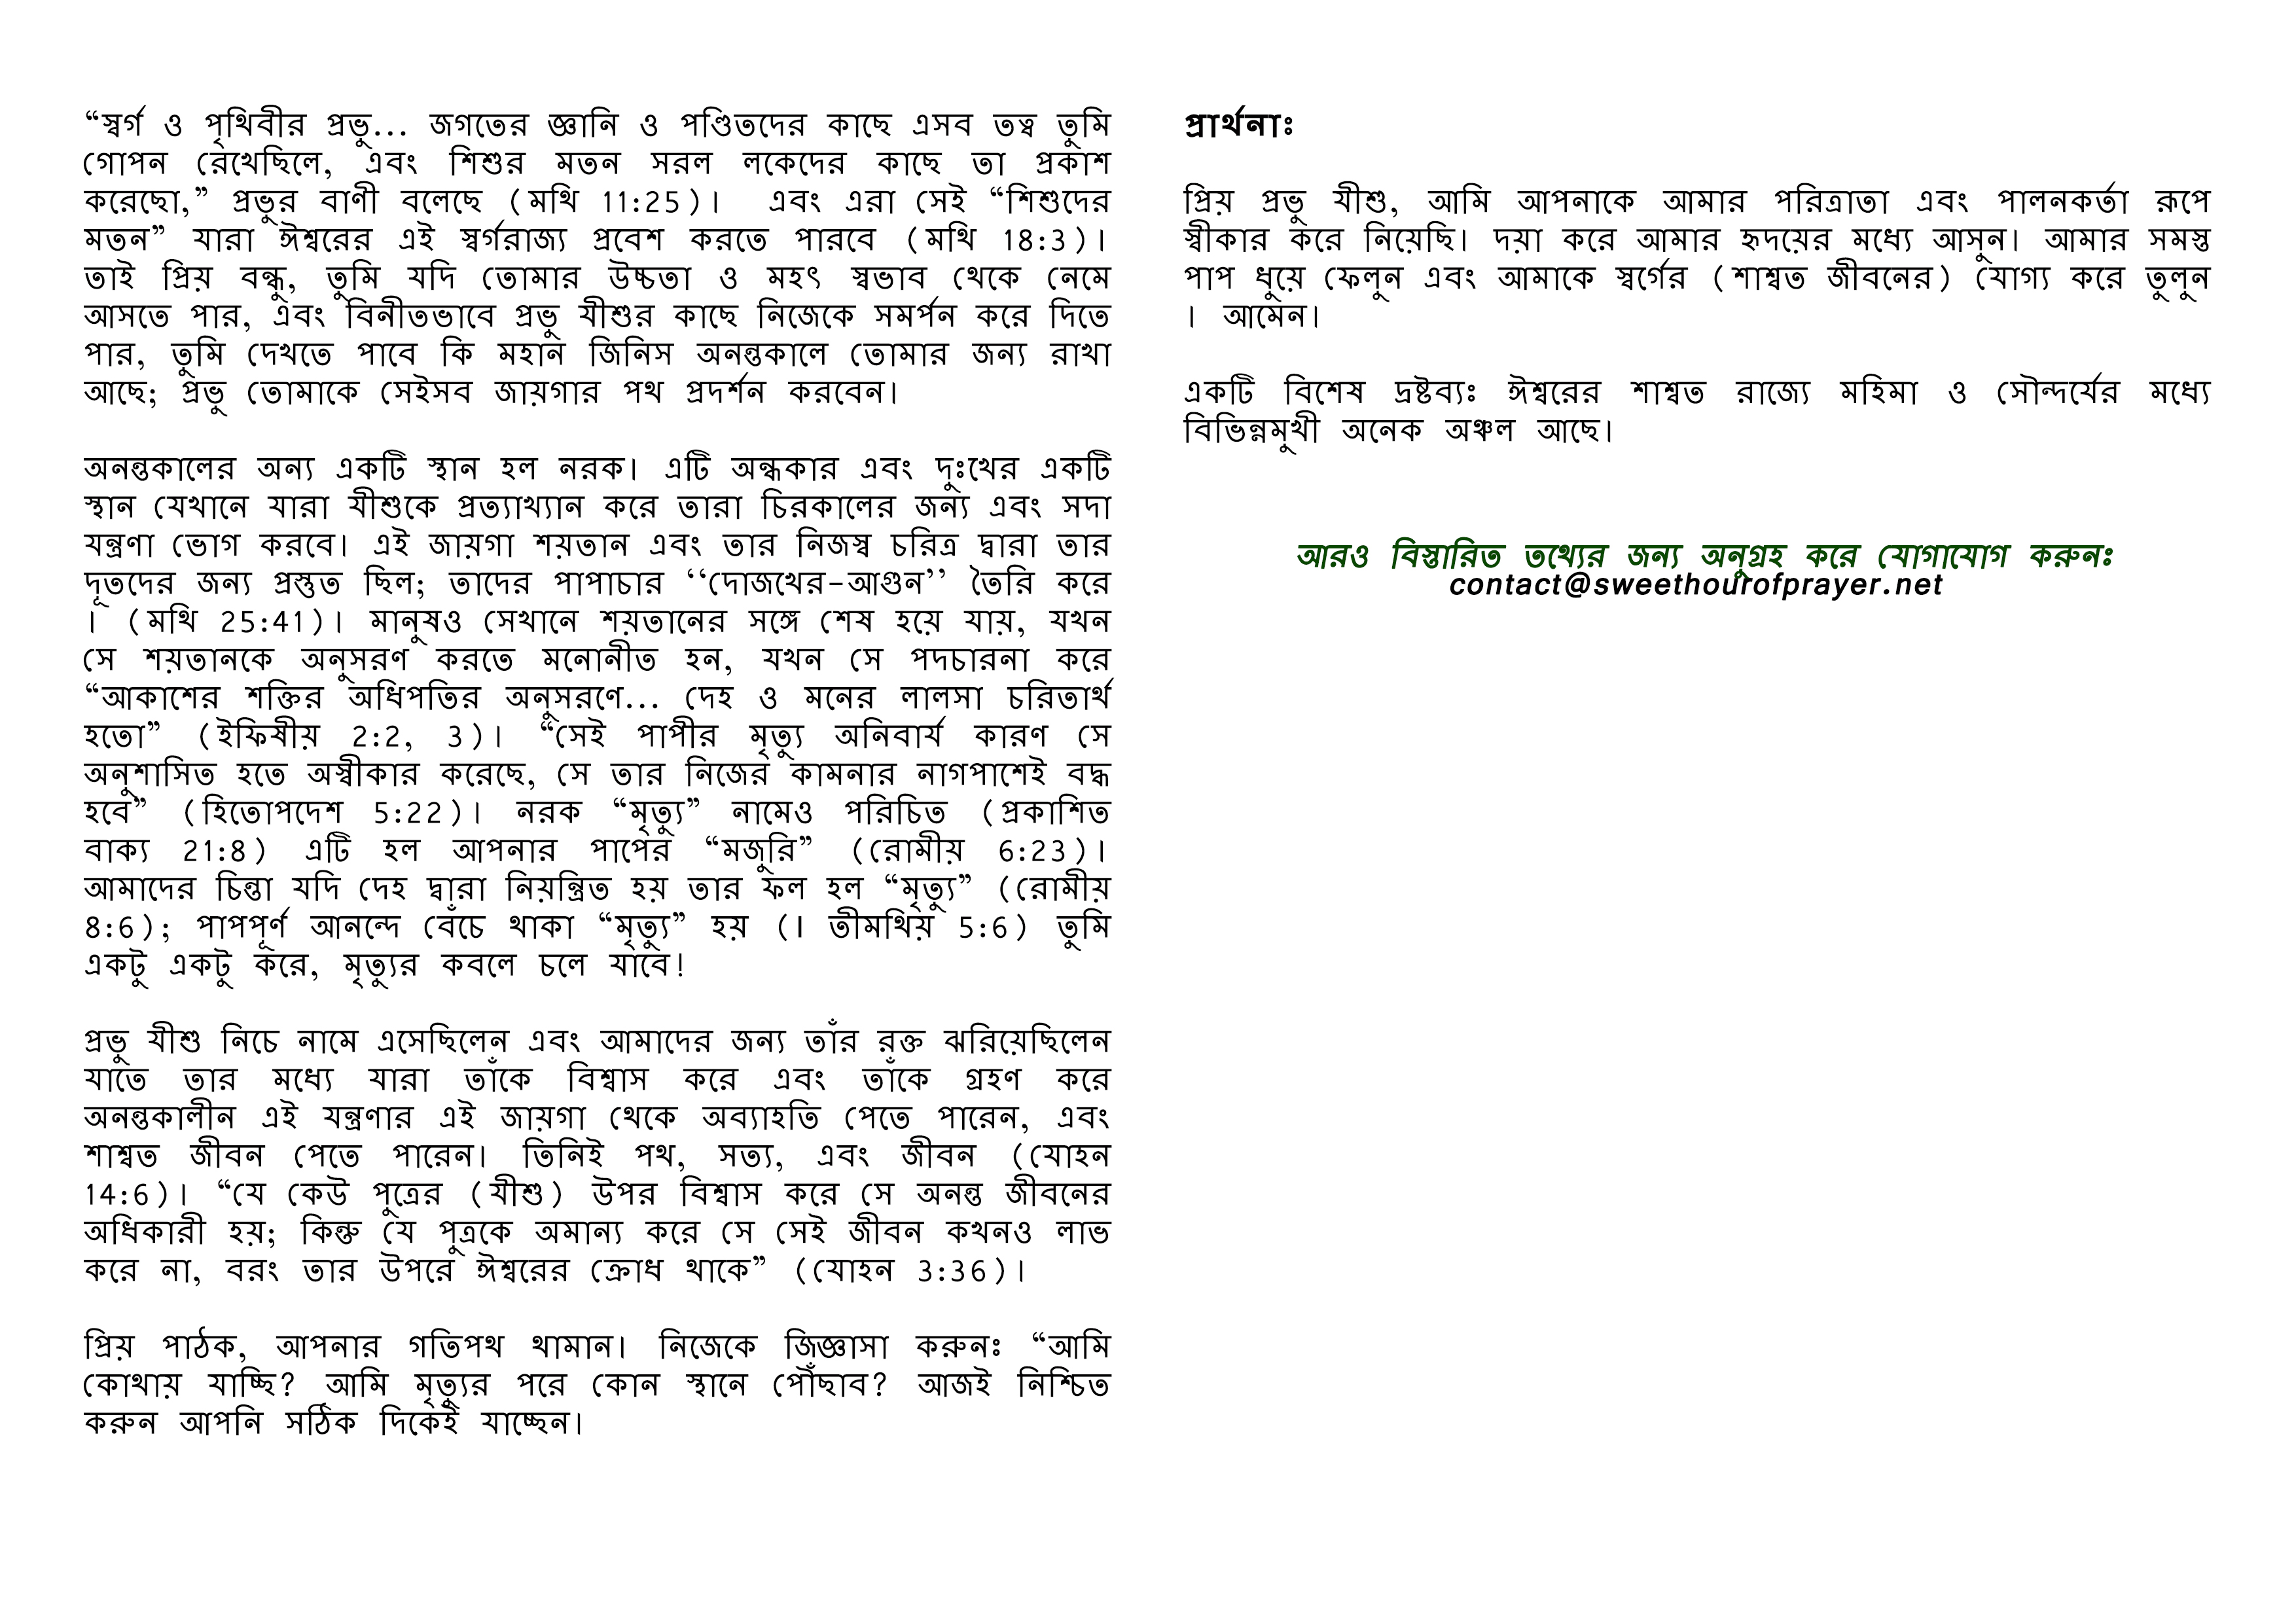 Where will you spend your eternity bengali page 2